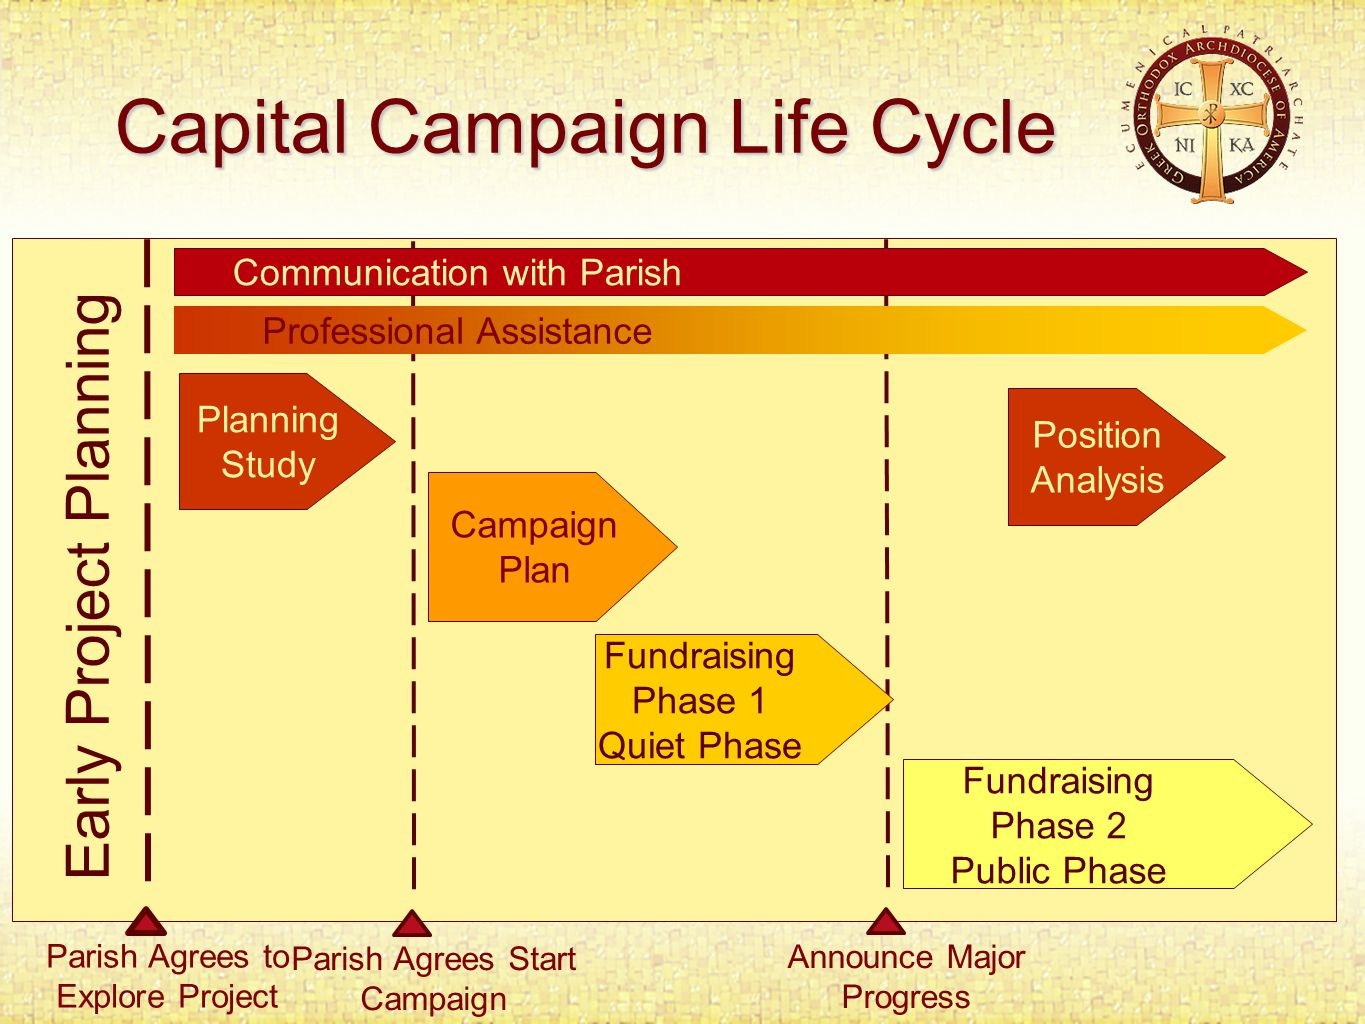 Capital Campaign Life Cycle Fundraising Phase 2 Public Phase Planning Study Early Project Planning Parish Agrees to Explore Project Announce Major Progress Fundraising Phase 1 Quiet Phase Parish Agrees Start Campaign Campaign Plan Communication with Parish Professional Assistance Position Analysis